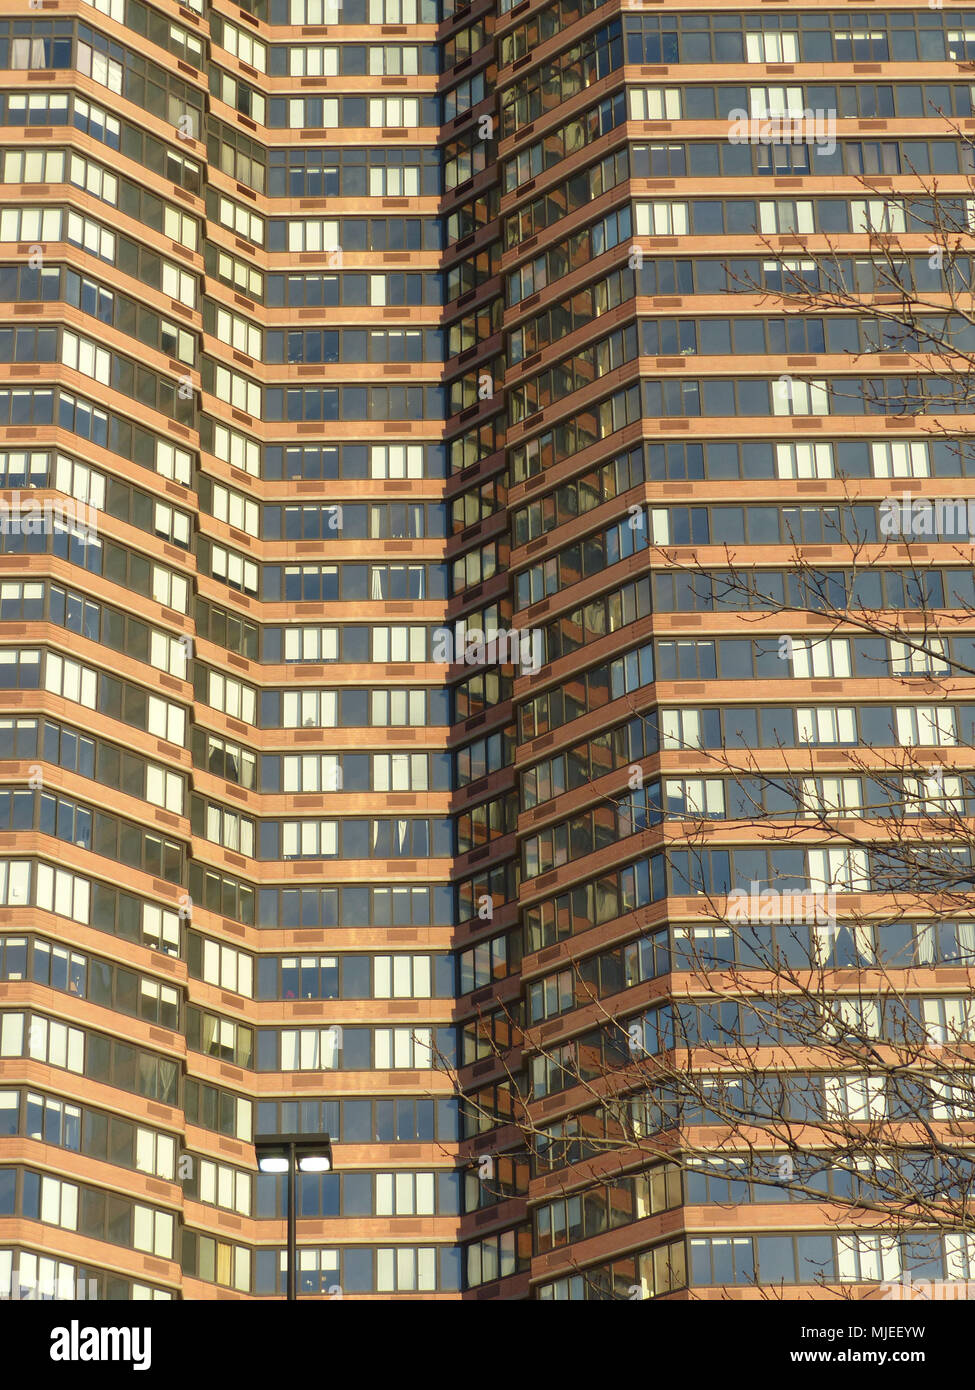 Apartment building on West 42nd Street in New York City - Stock Image